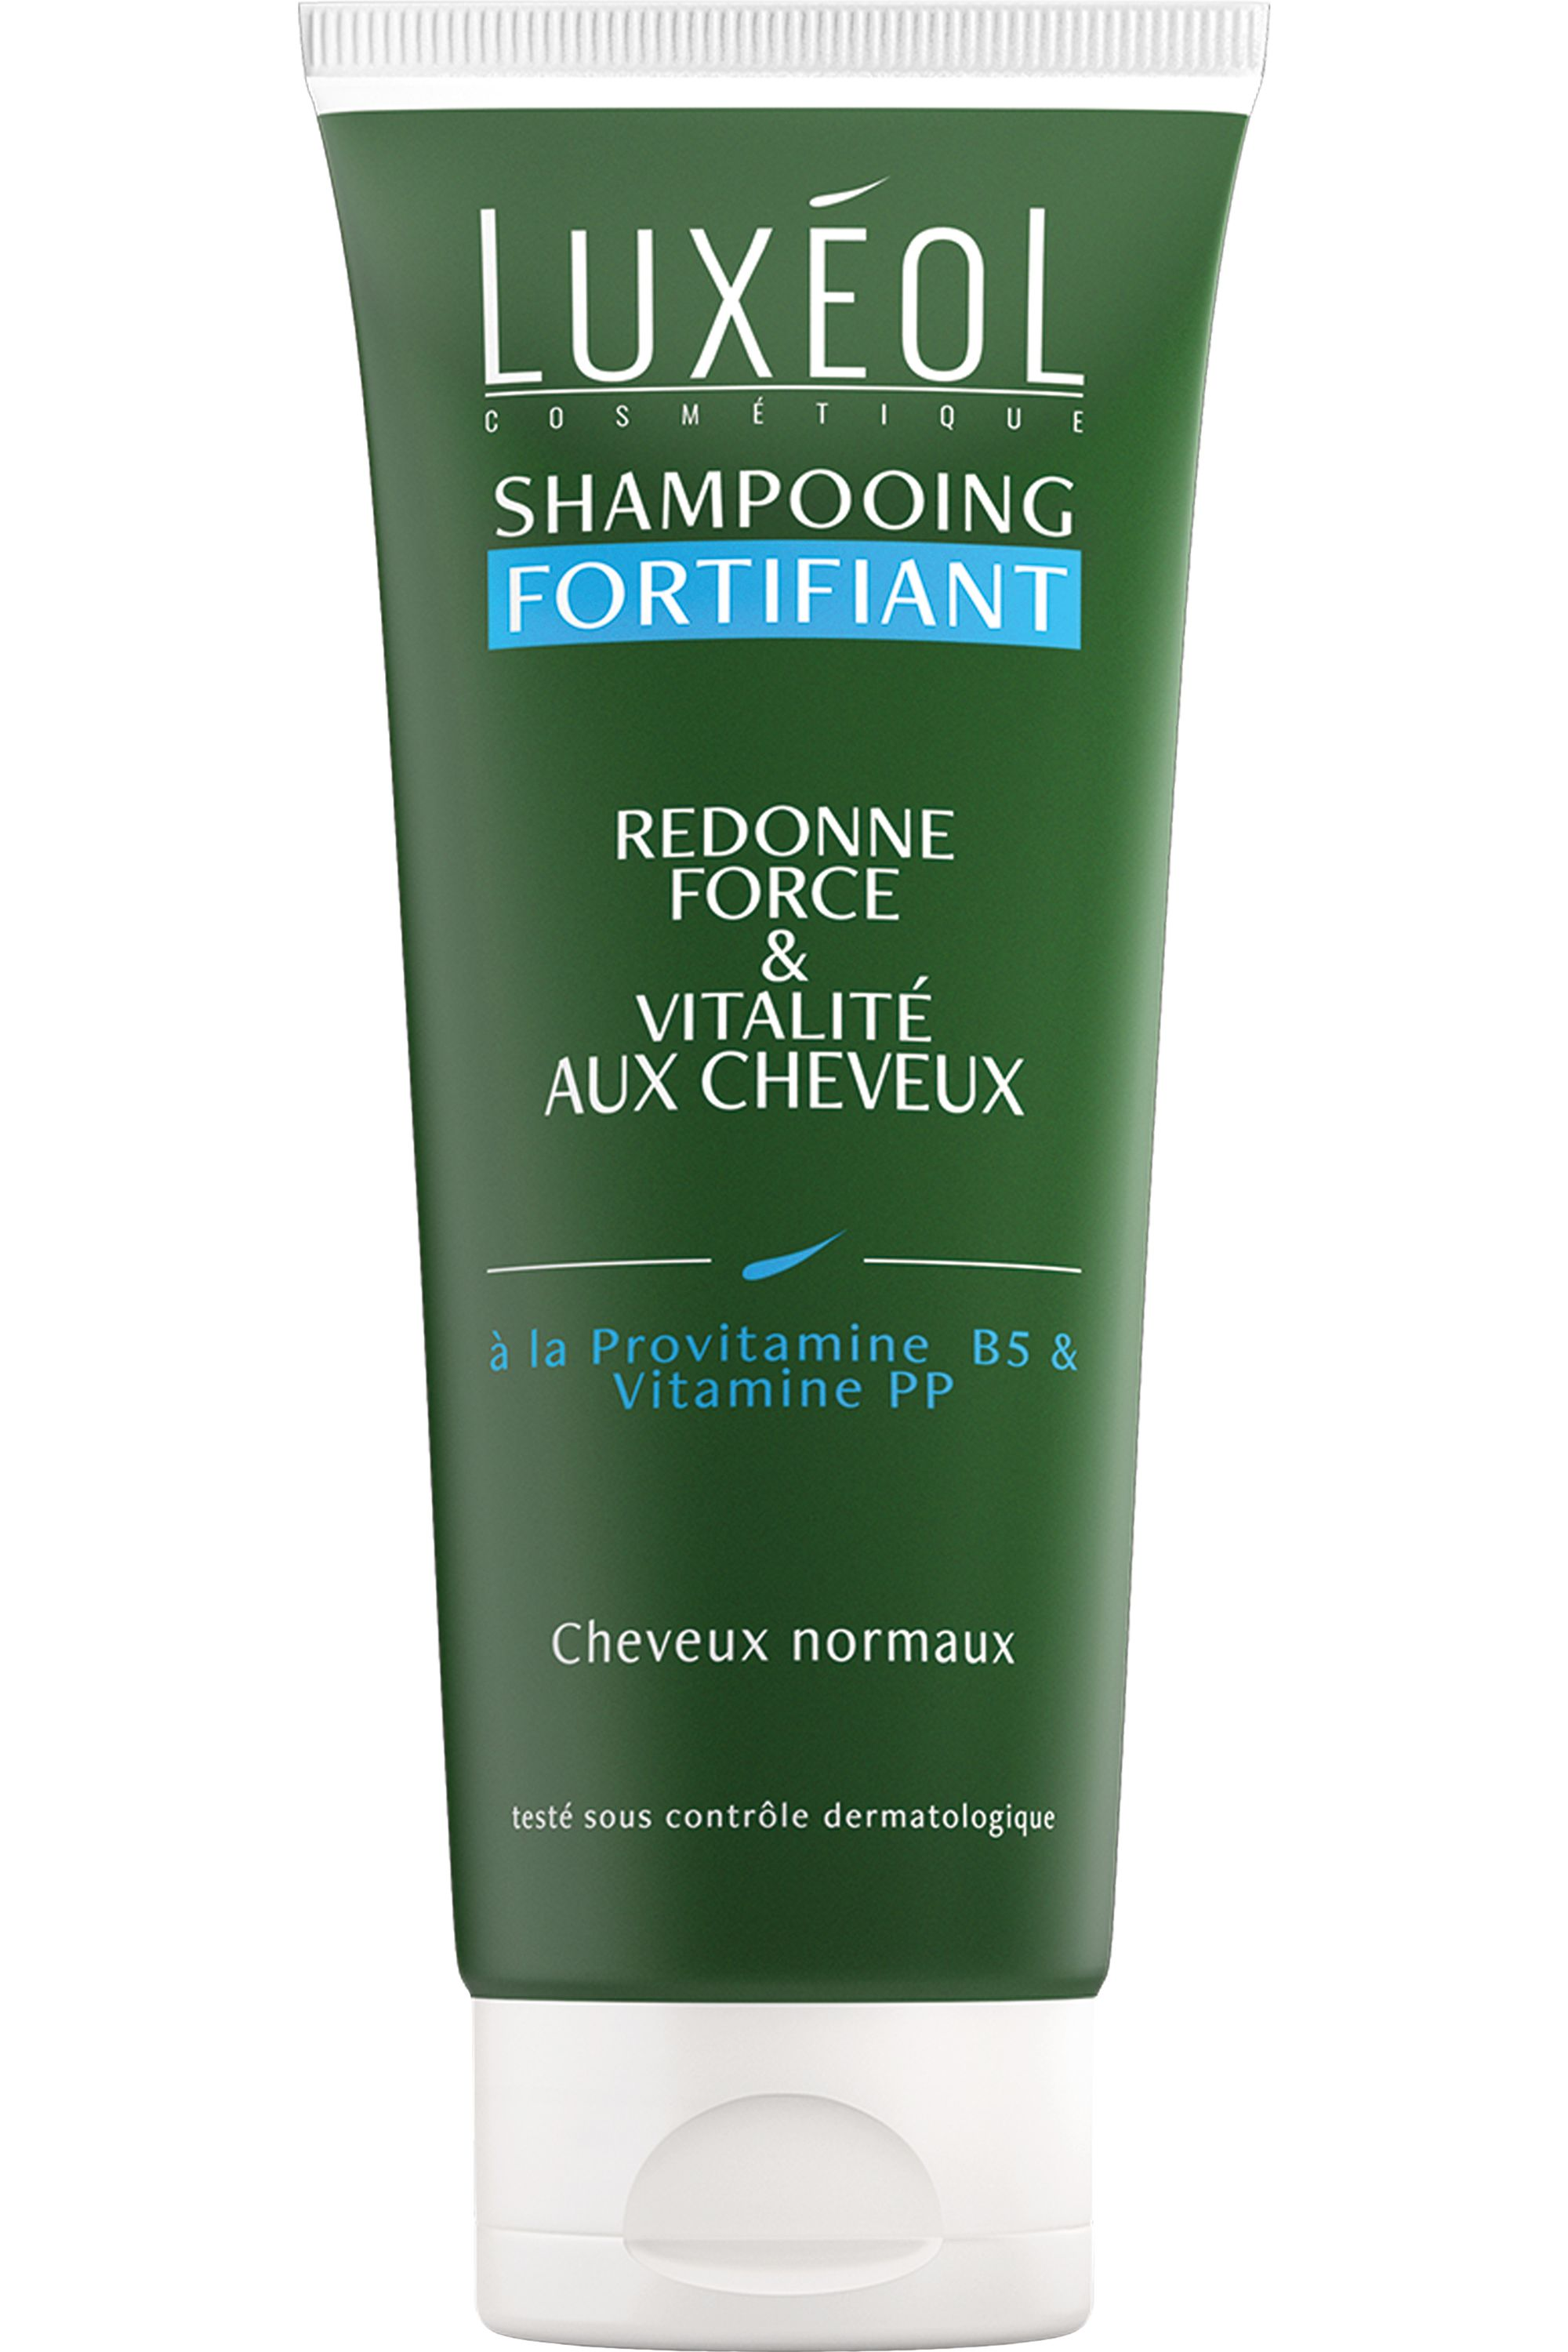 Blissim : Luxéol - Shampooing fortifiant - Shampooing fortifiant